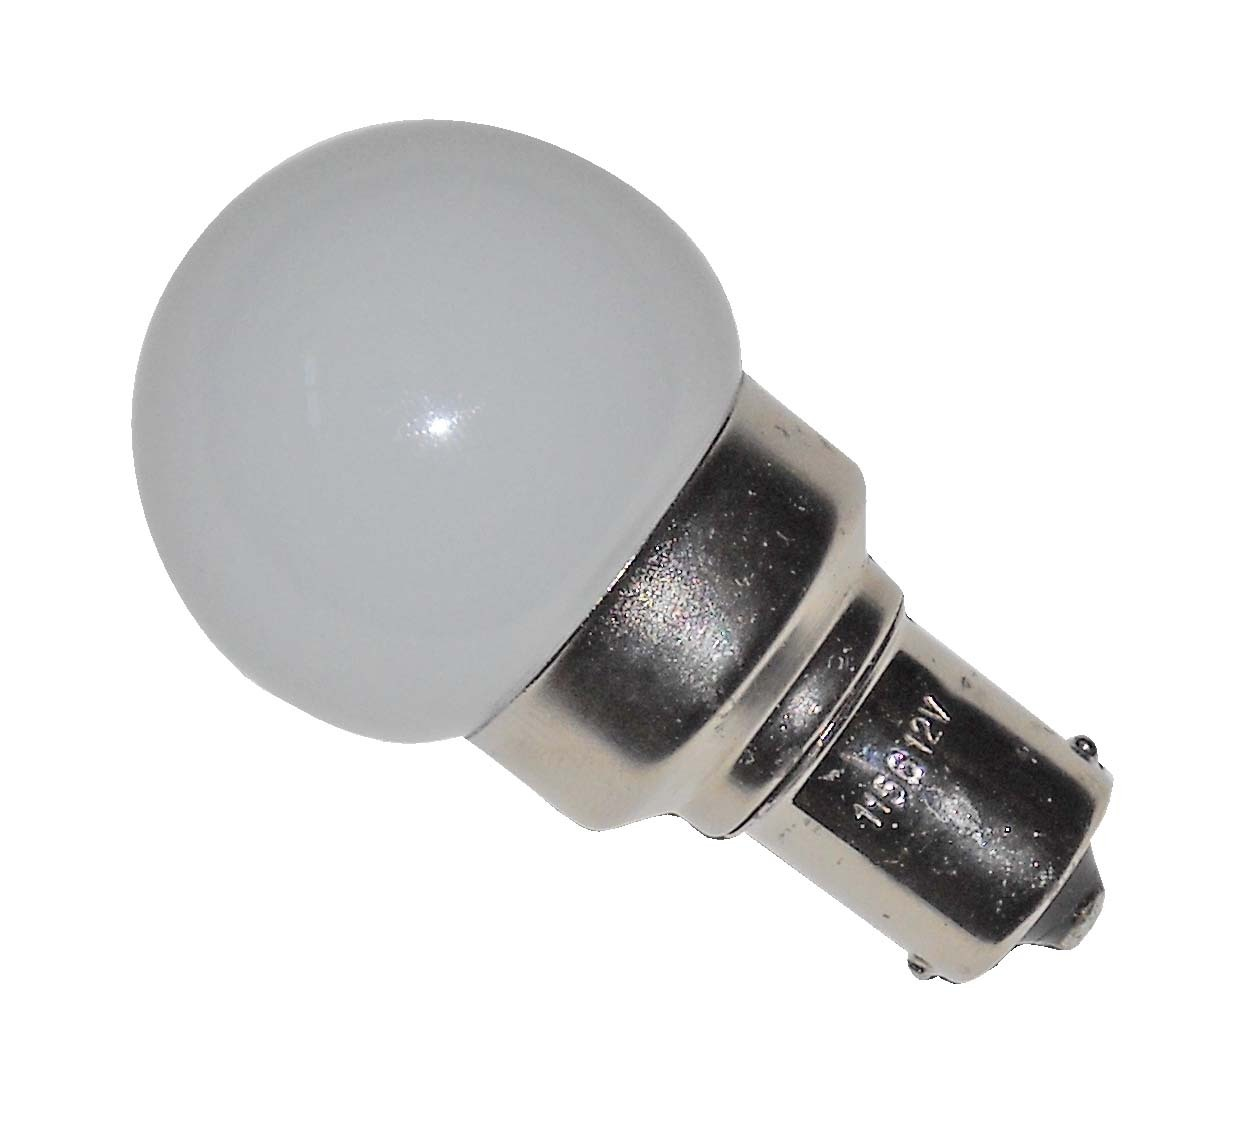 3 Watt LED Bulb Replacement for 20-99 52616